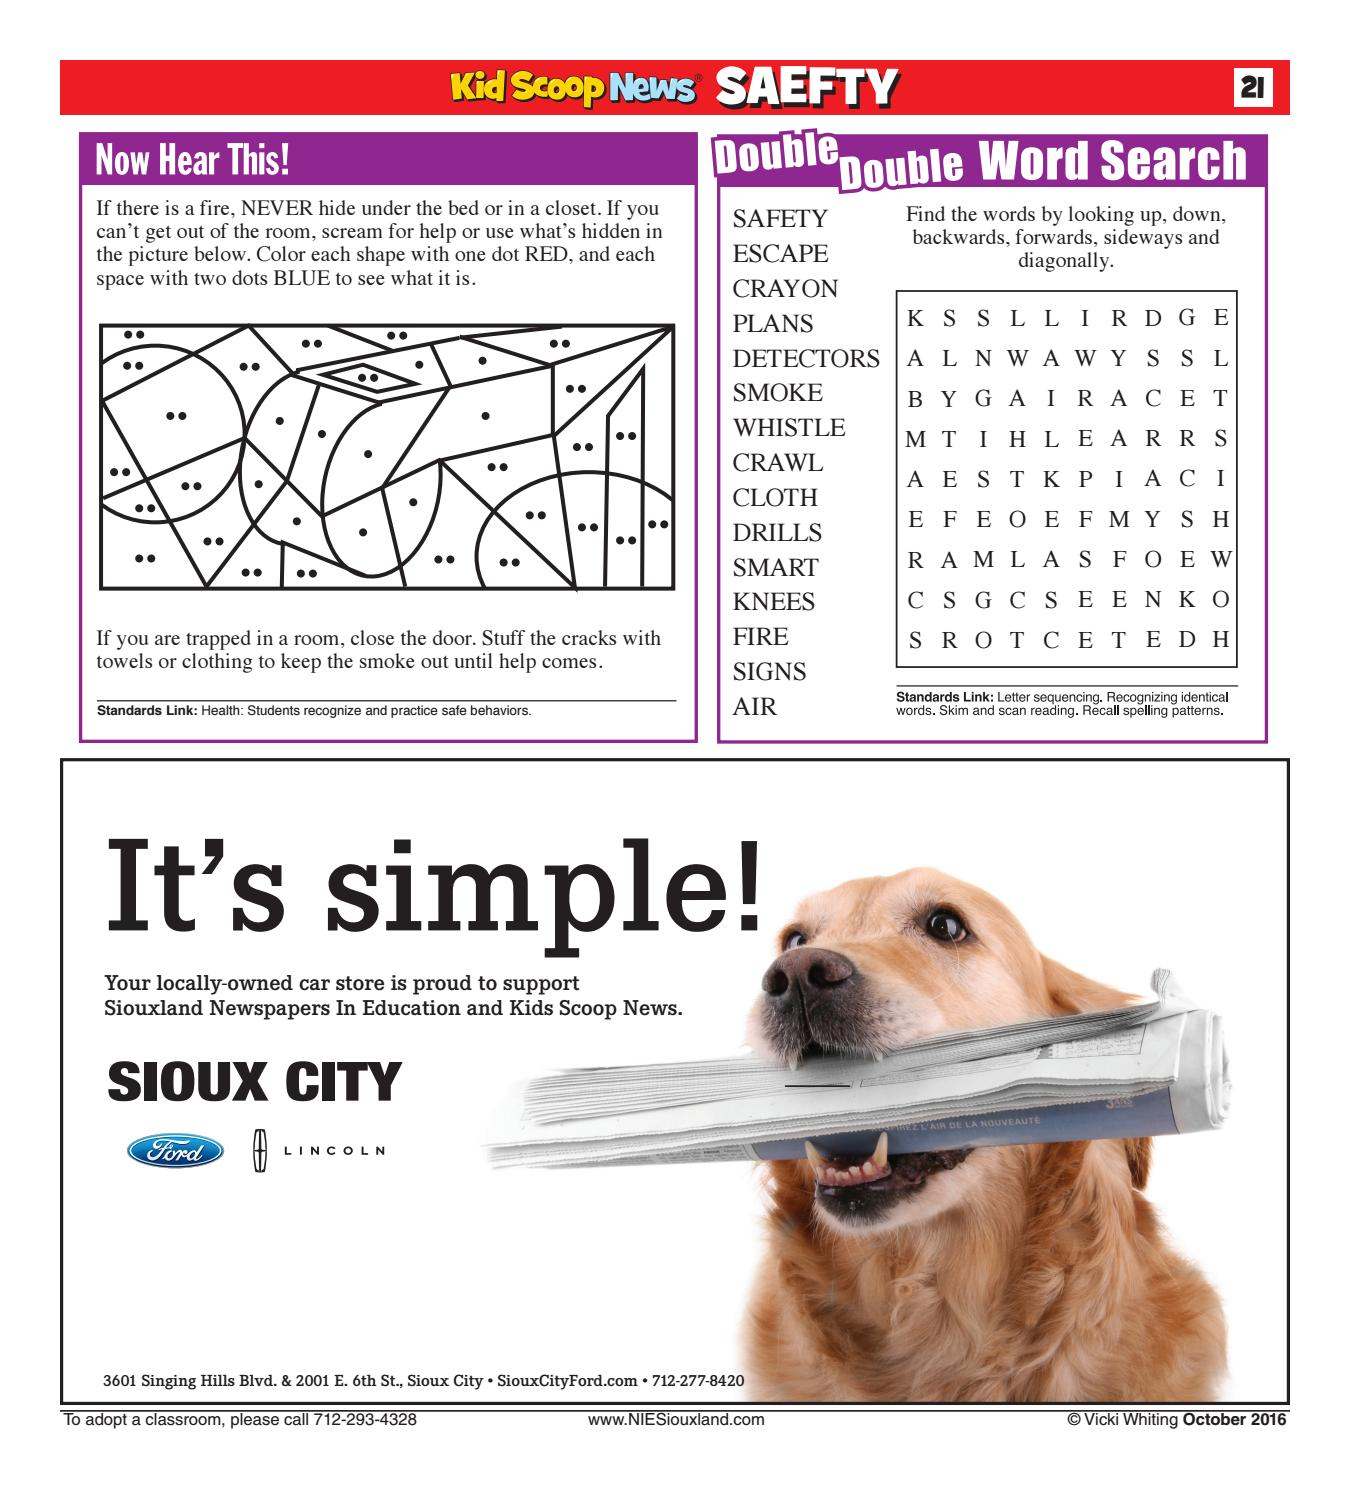 Kids Scoop News - October 2016 by Sioux City Journal - issuu